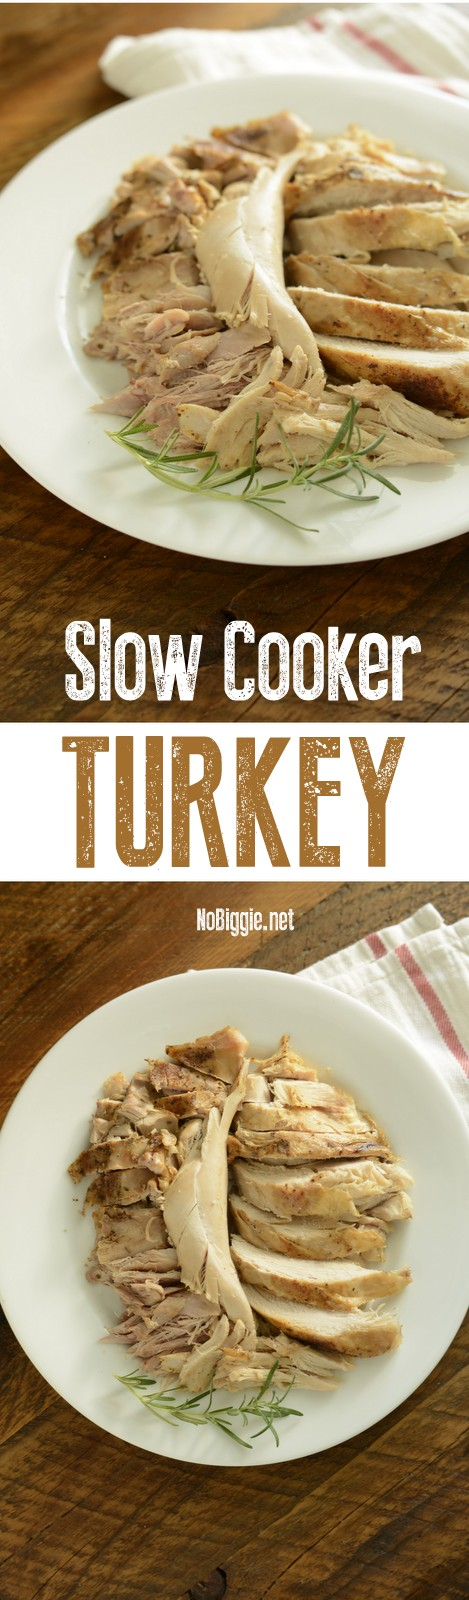 Slow Cooker Turkey | NoBiggie.net